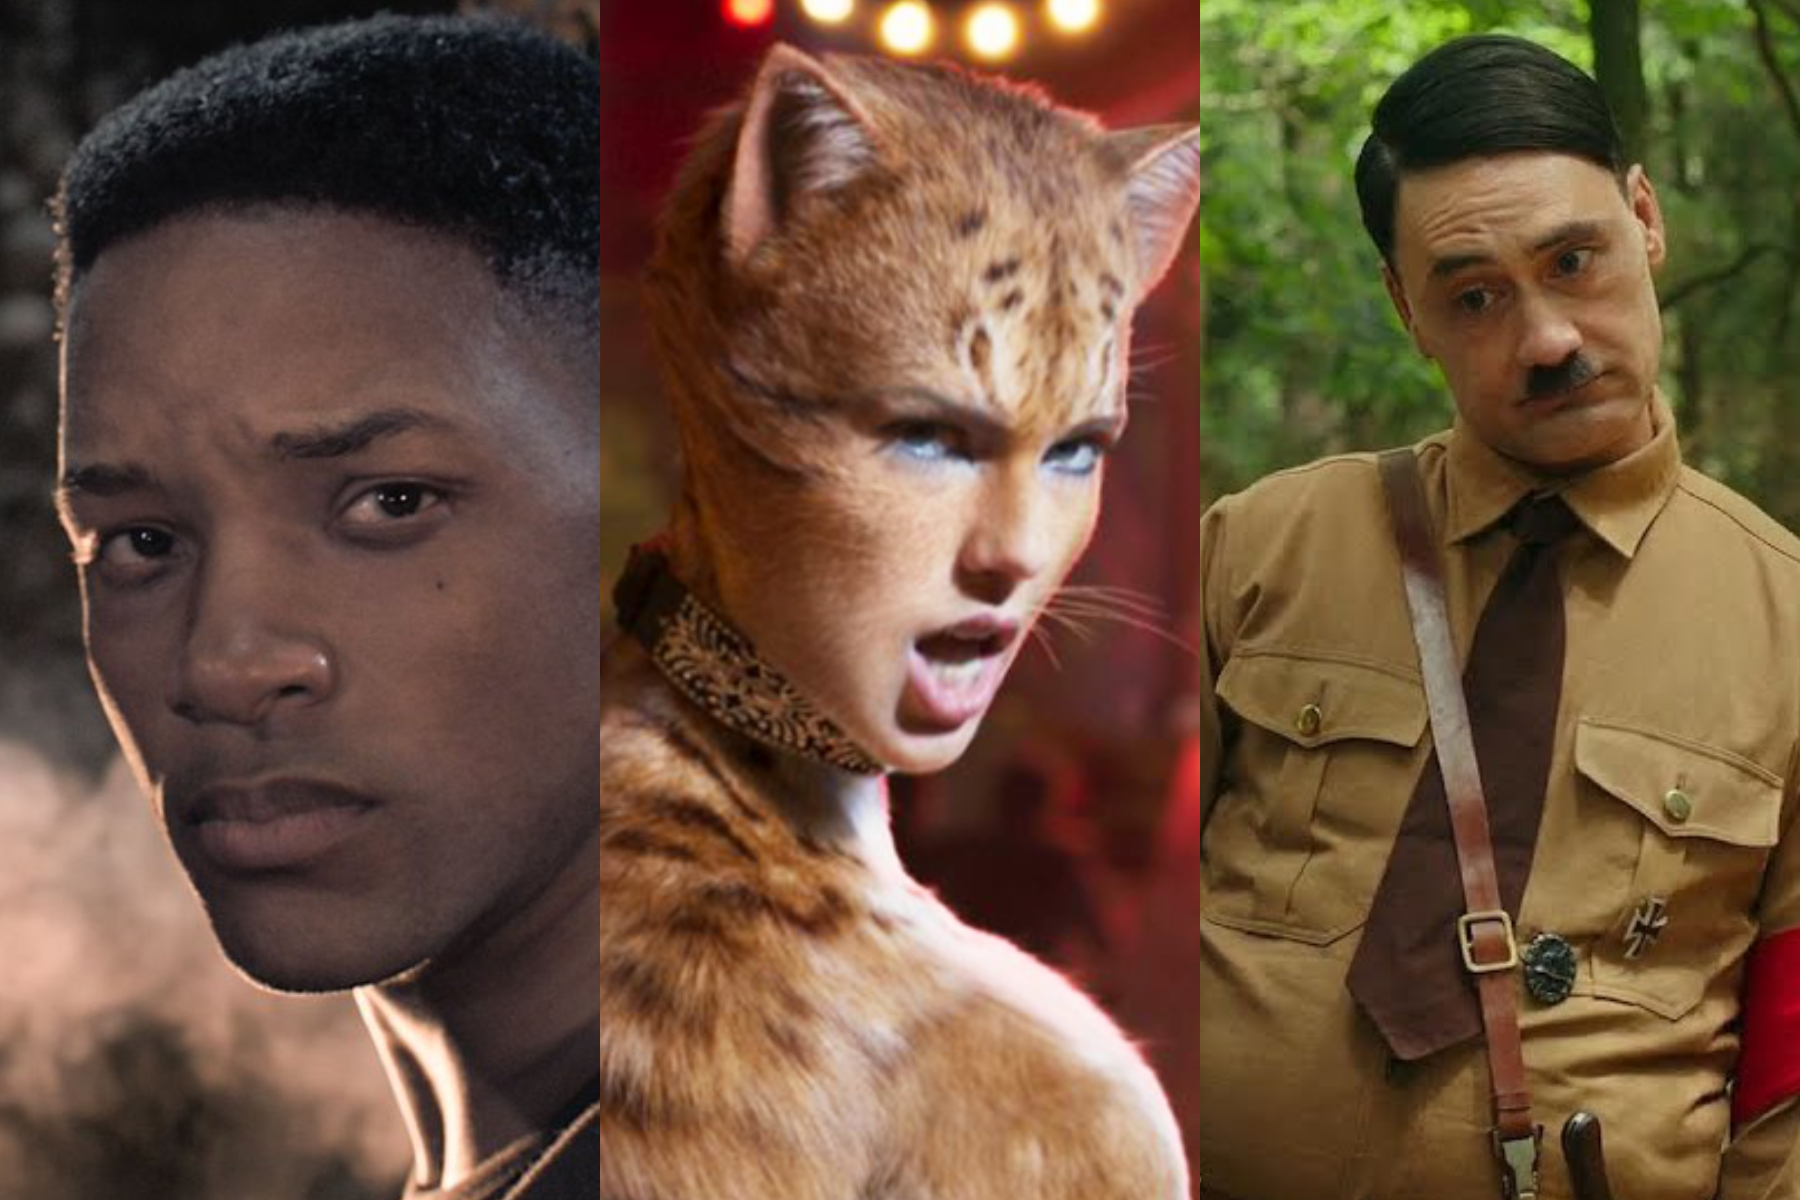 The 2019 fall movie season will be one for the history books